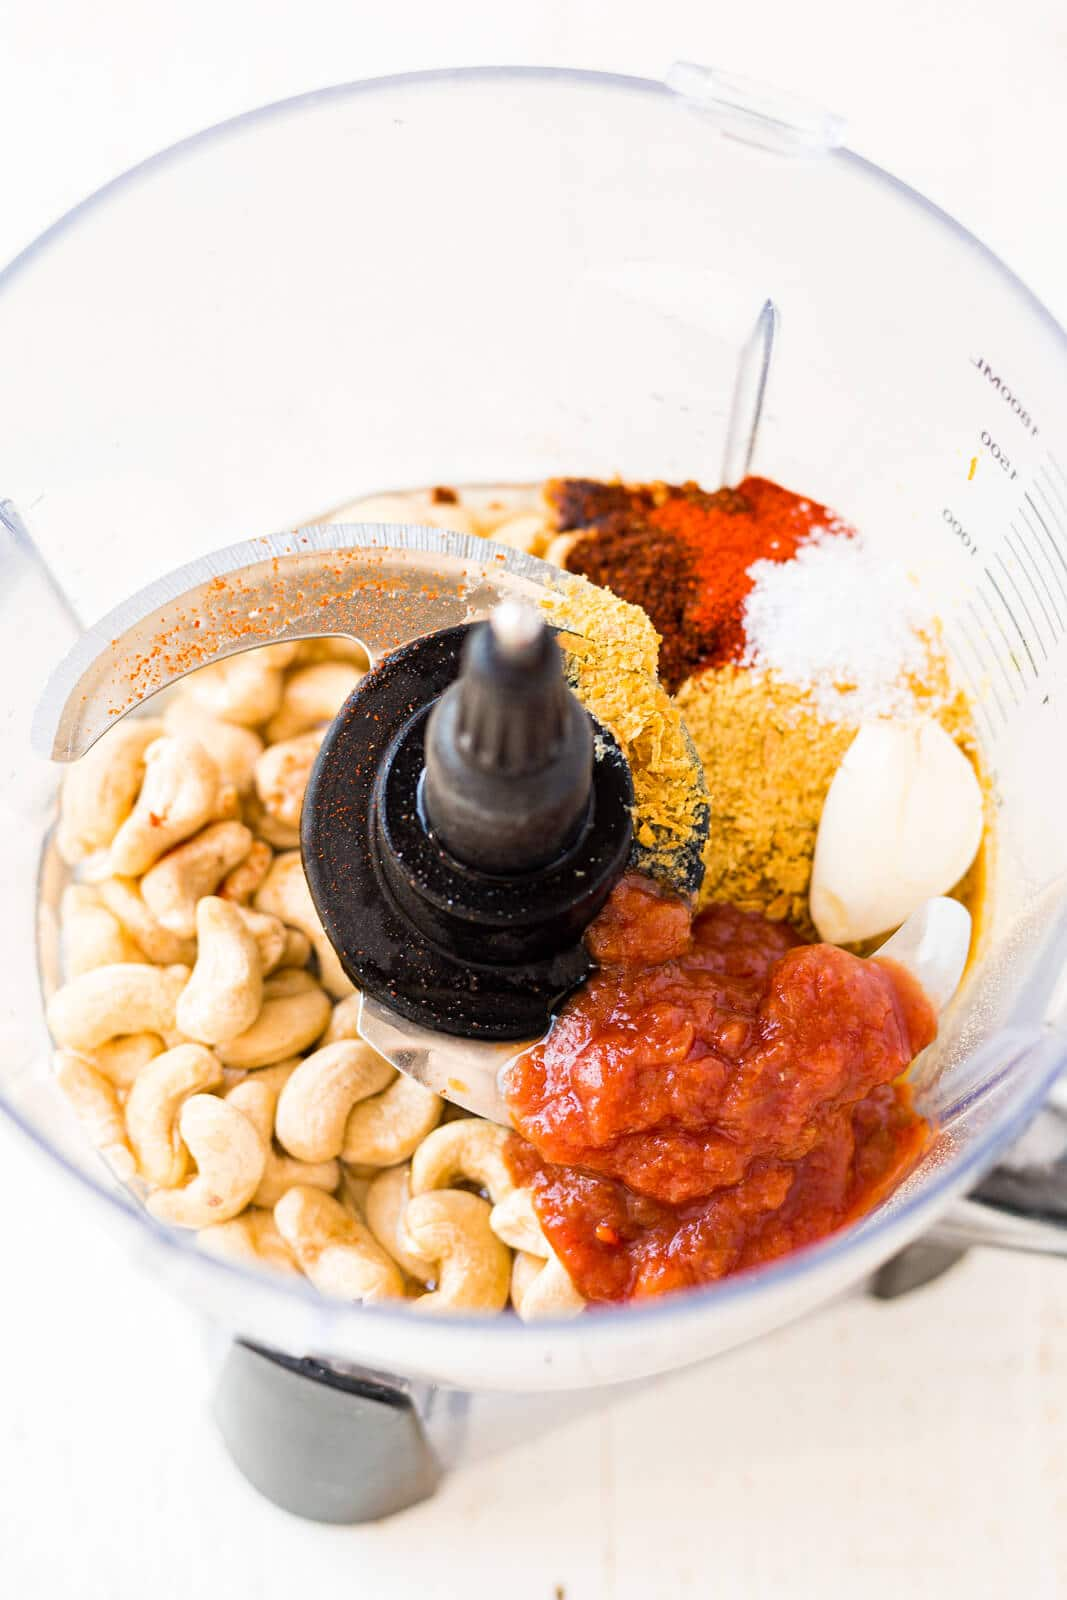 ingredients for cashew queso in the food processor